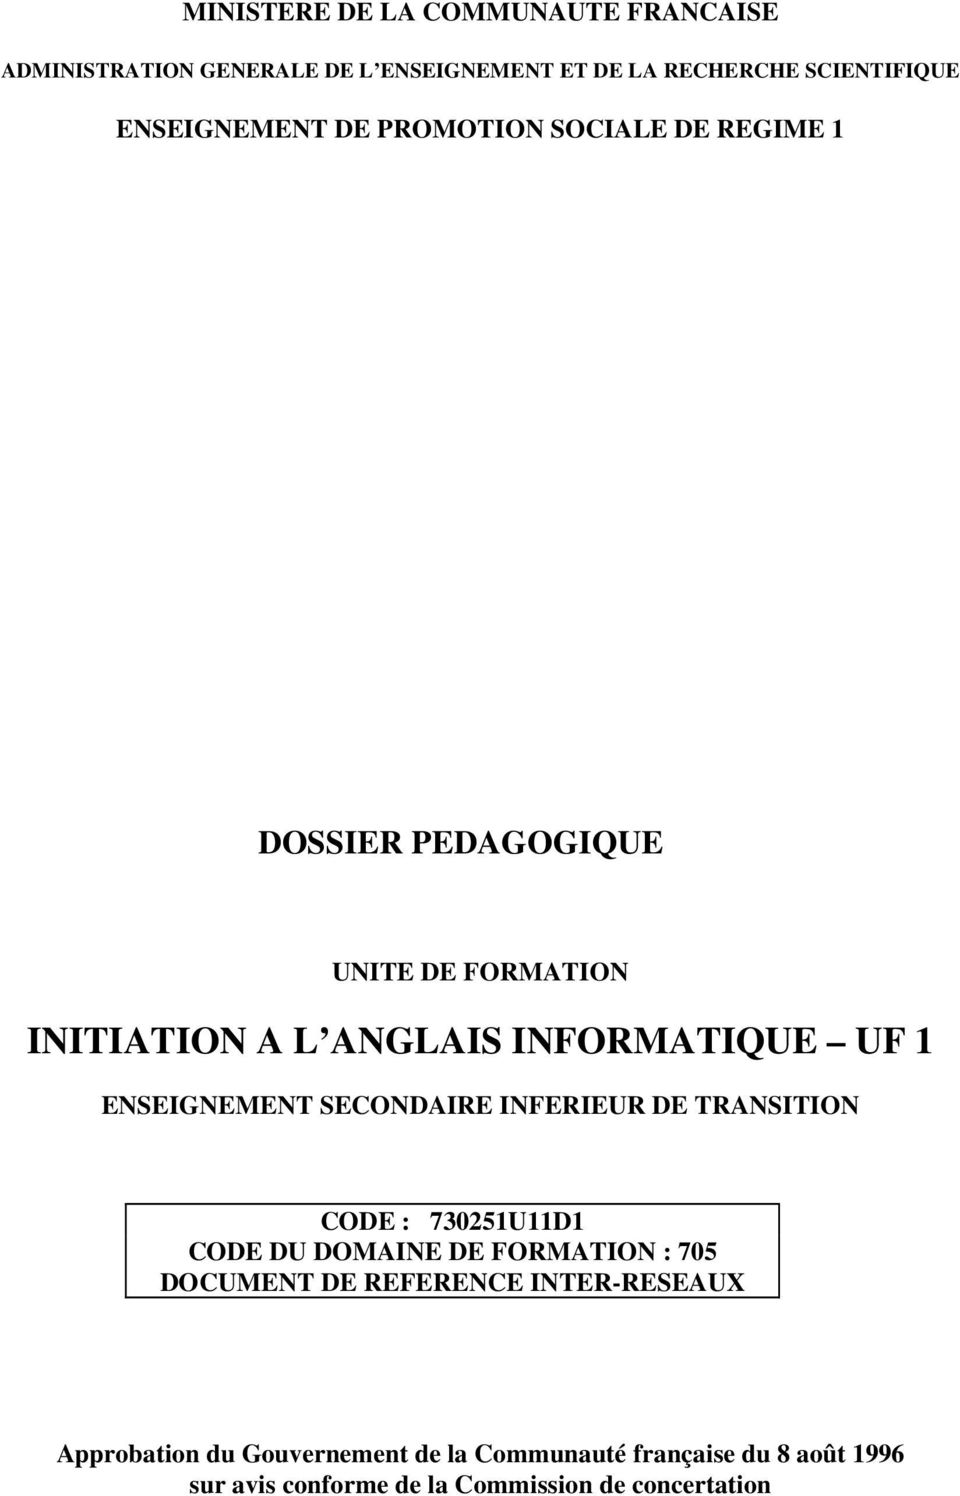 ENSEIGNEMENT SECONDAIRE INFERIEUR DE TRANSITION CODE : 730251U11D1 CODE DU DOMAINE DE FORMATION : 705 DOCUMENT DE REFERENCE